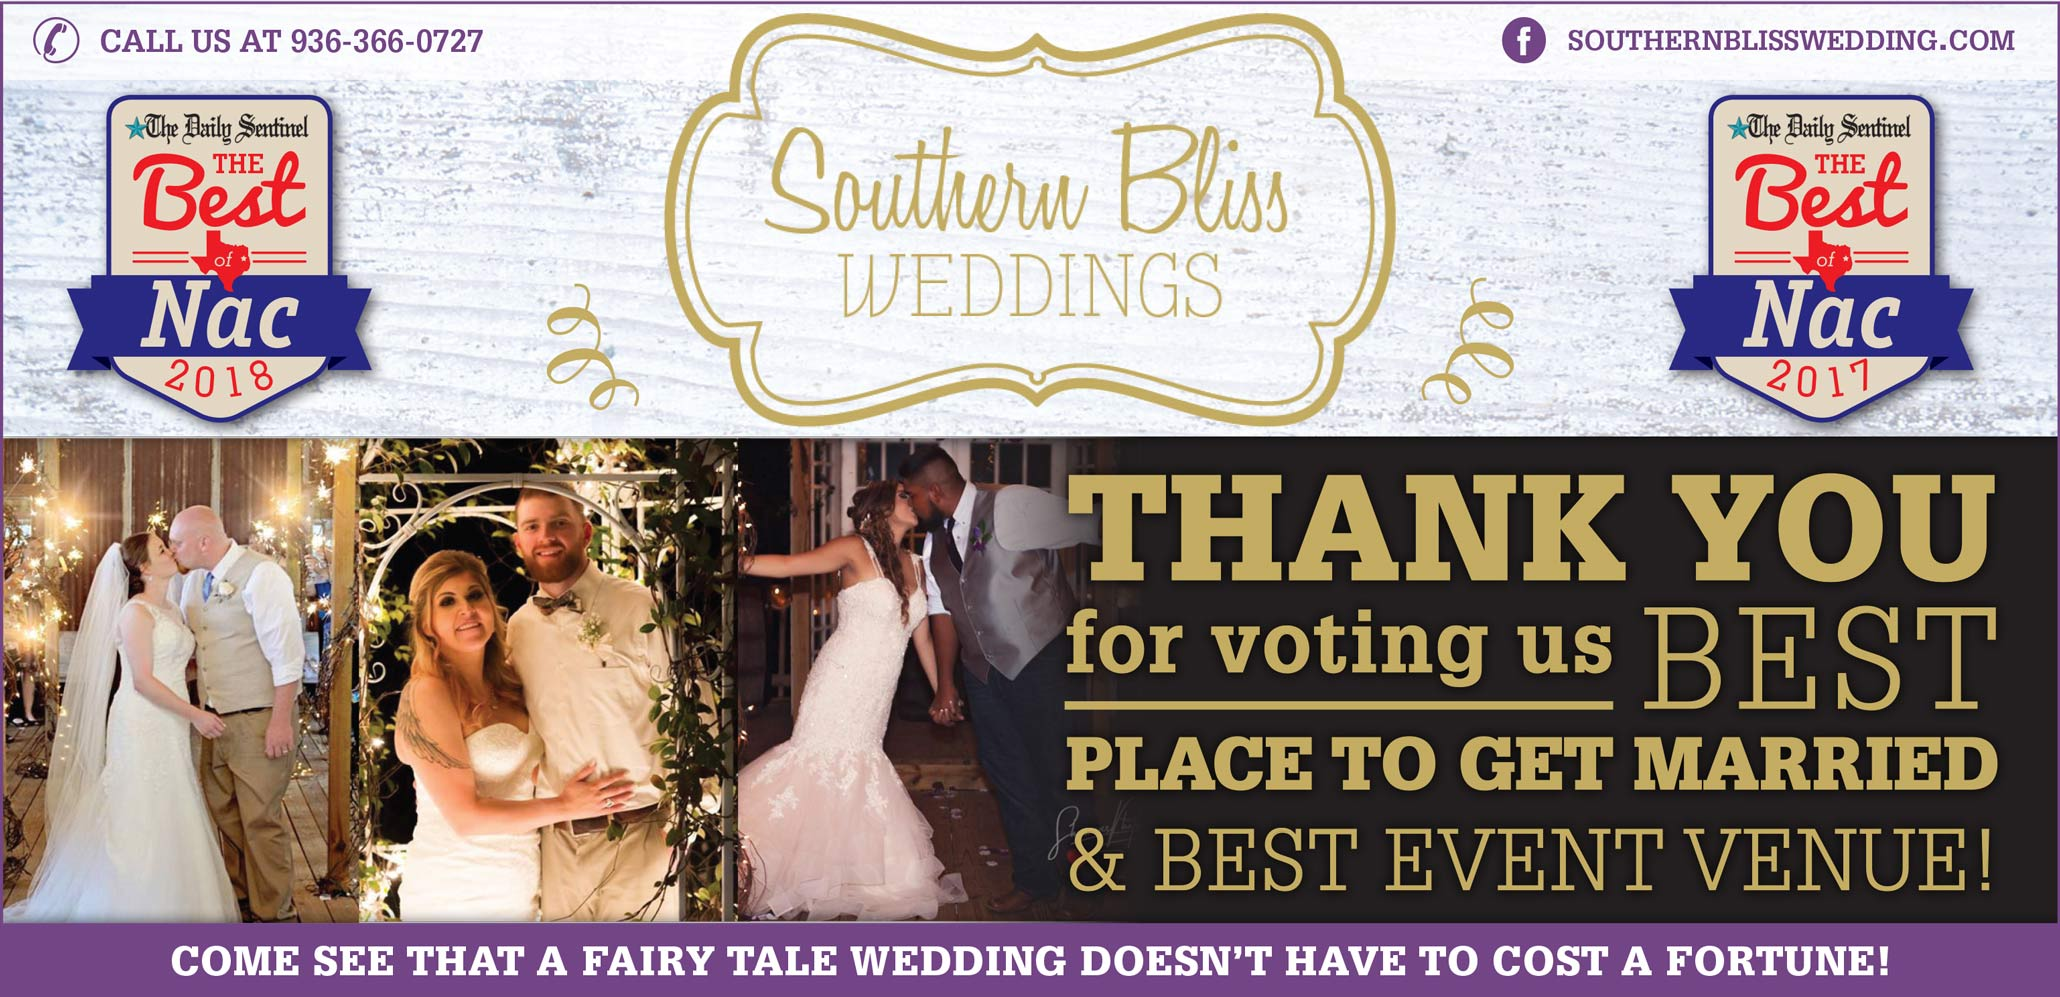 Southern Bliss Weddings Nacogdoches Tx